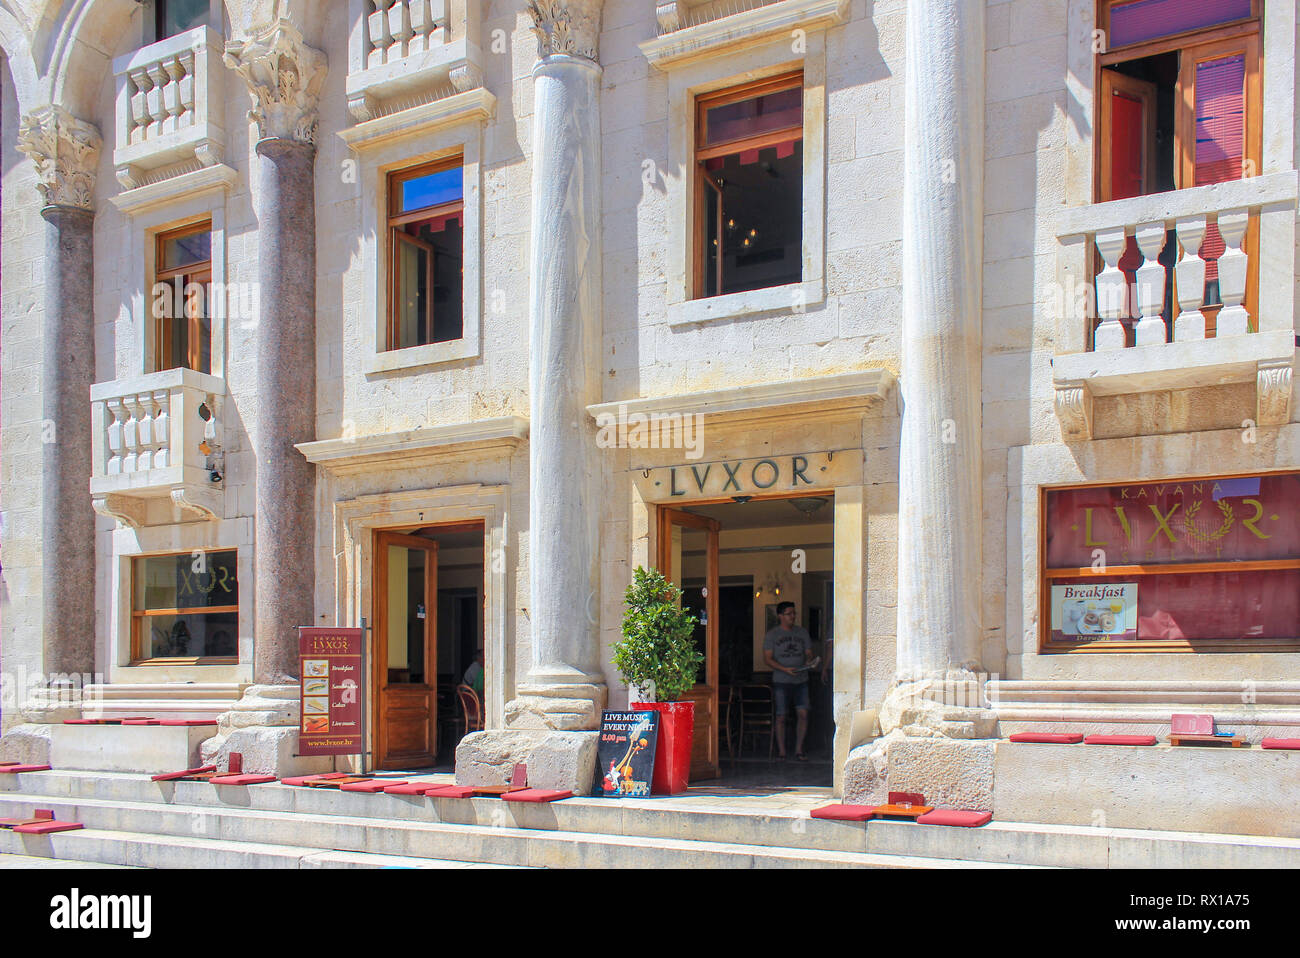 luxor-cafebar-in-the-peristil-square-at-the-heart-of-the-roman-diocletian-palace-split-croatia-RX1A75.jpg